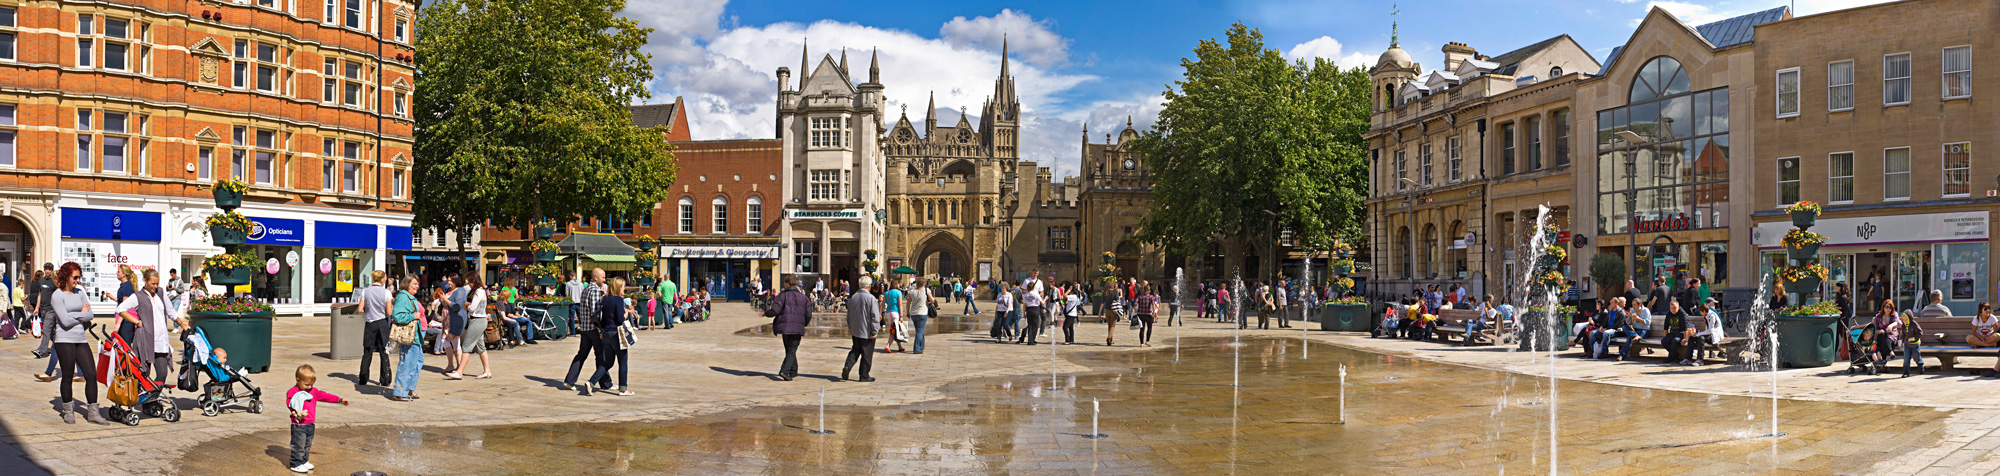 Peterborough city centre preparing to welcome back shoppers